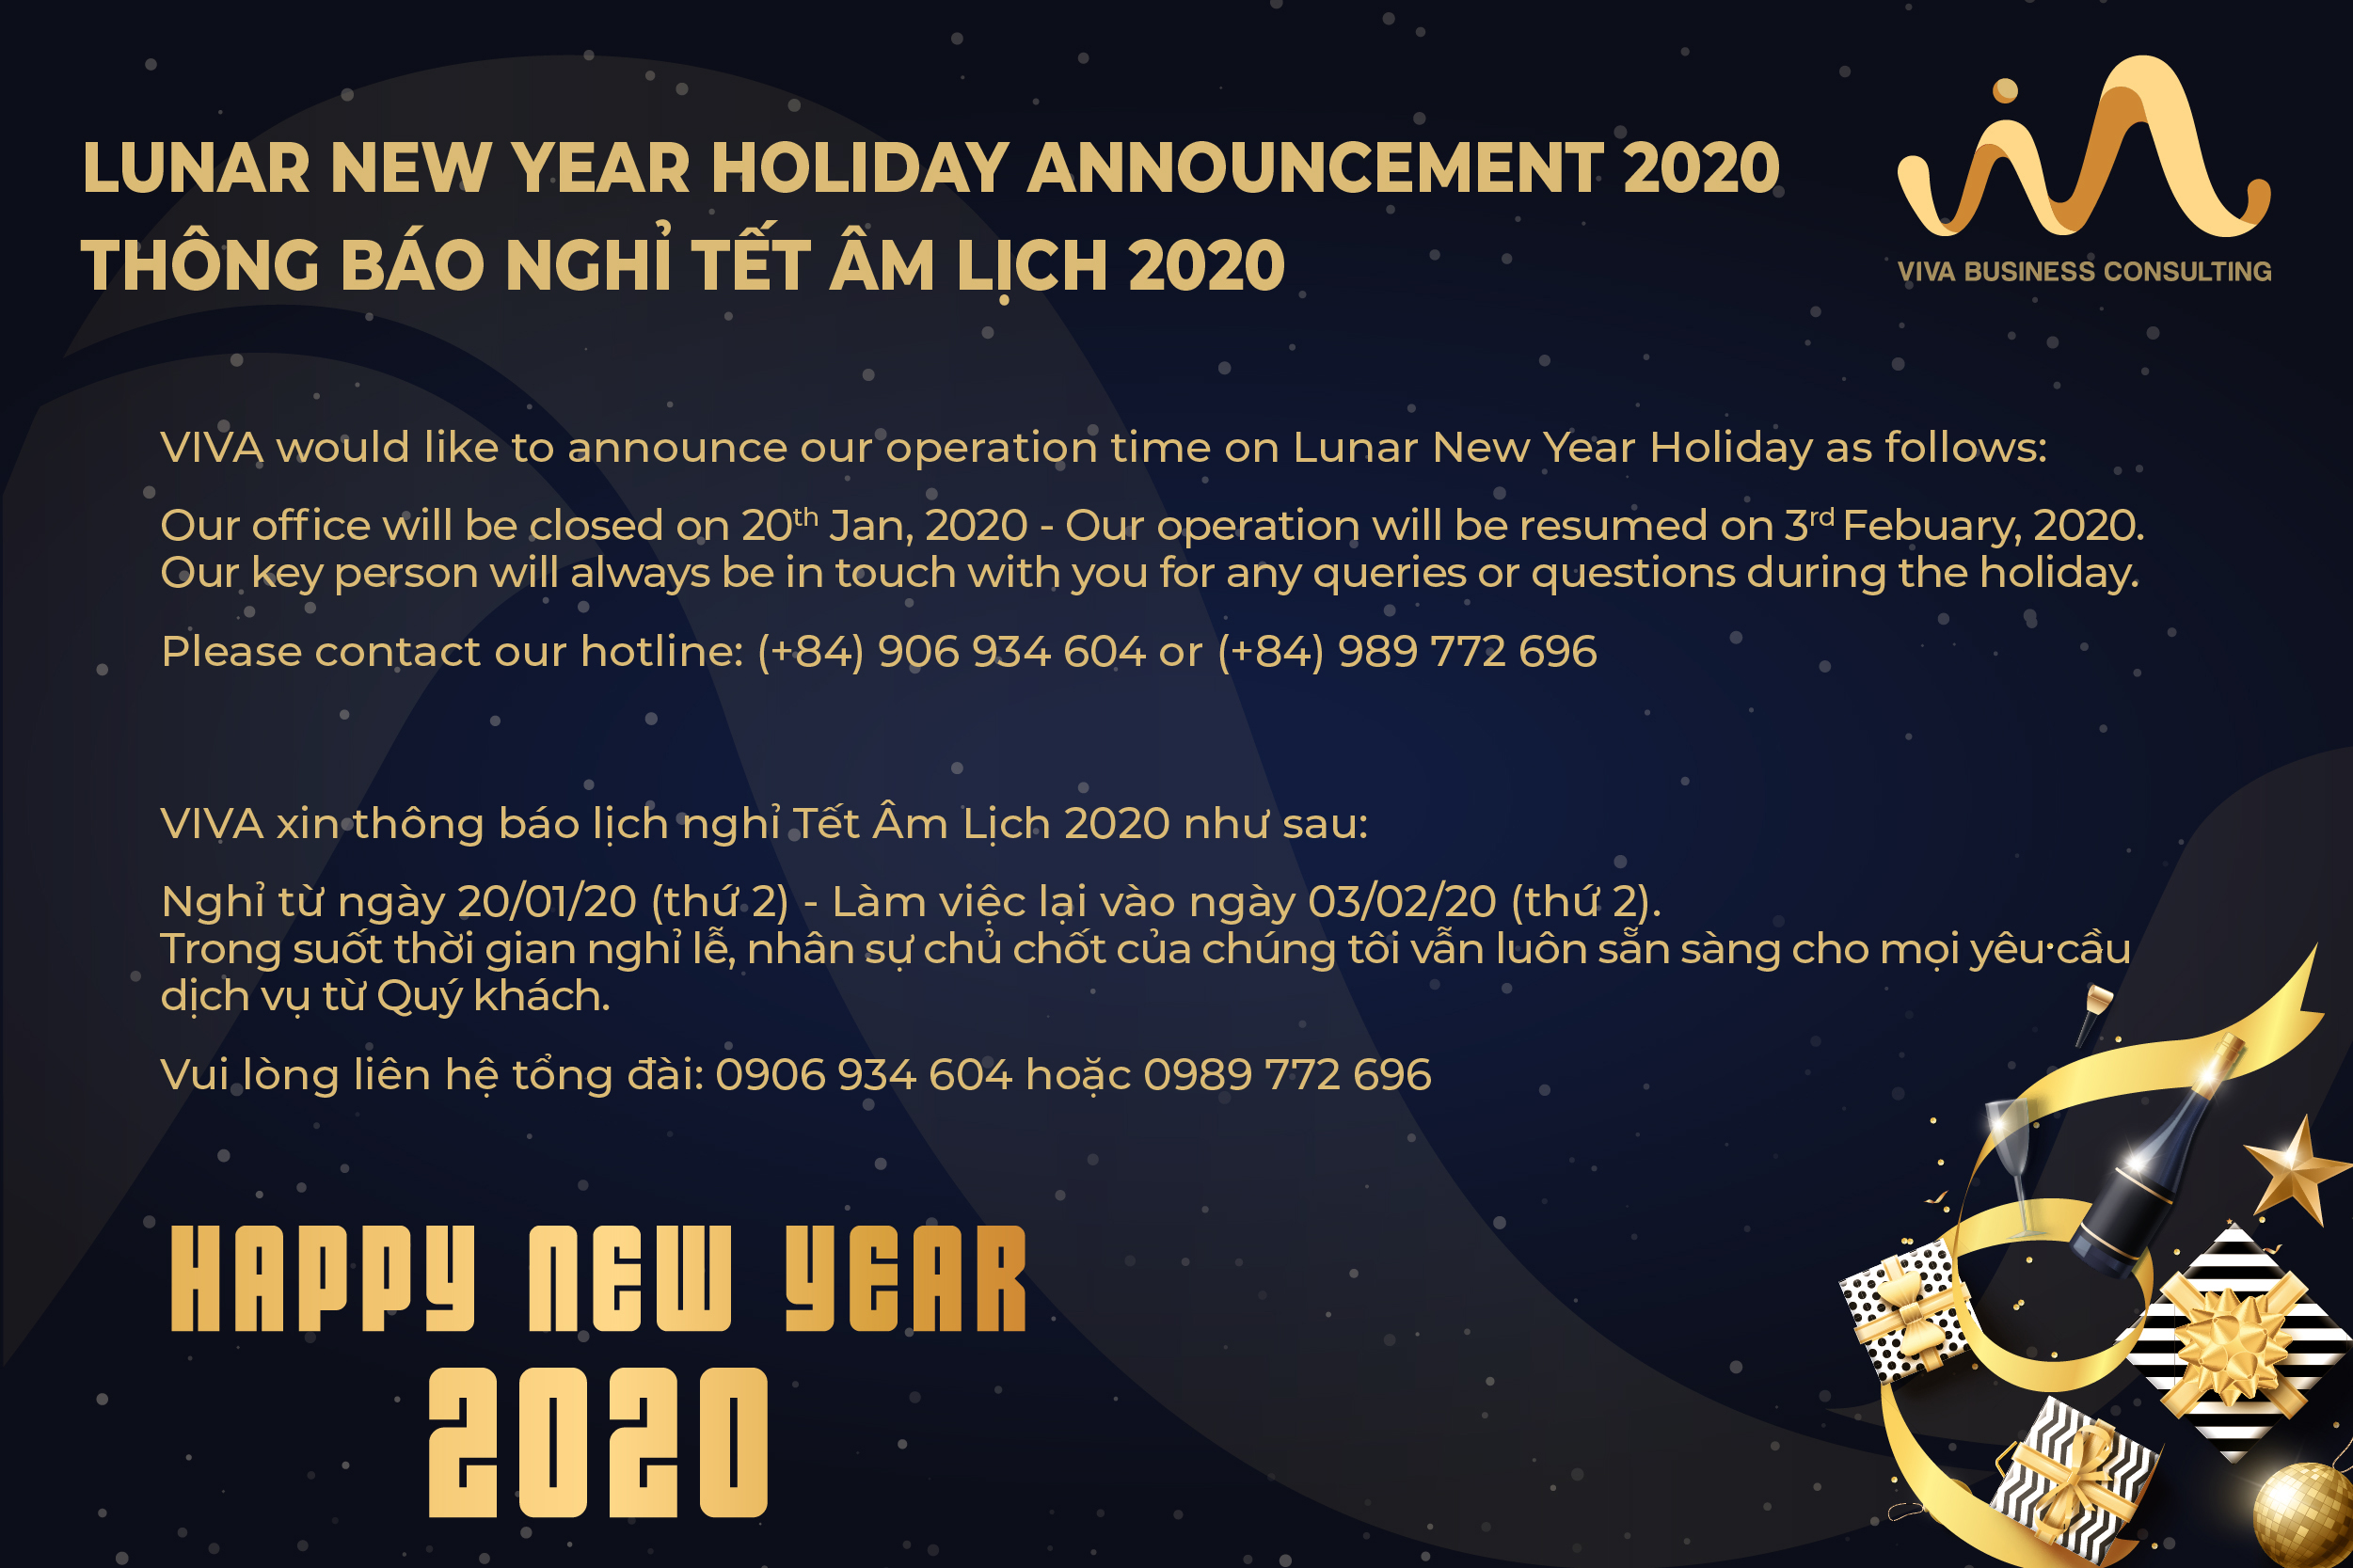 Lunar new year announcement 2020